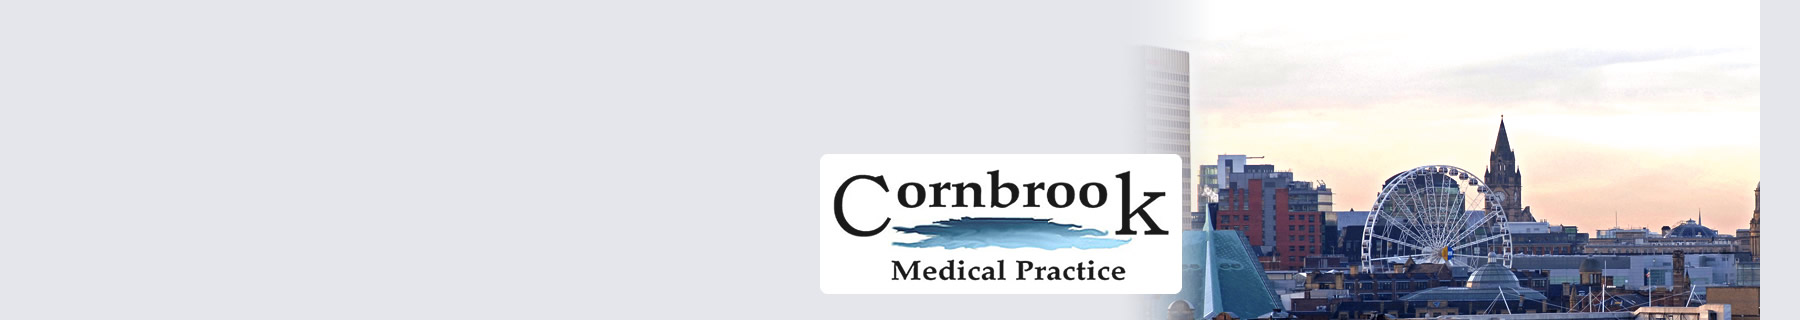 Cornbrook Medical Practice direct all inbound calls to one of their sites, which acts as a communications hub for the practice